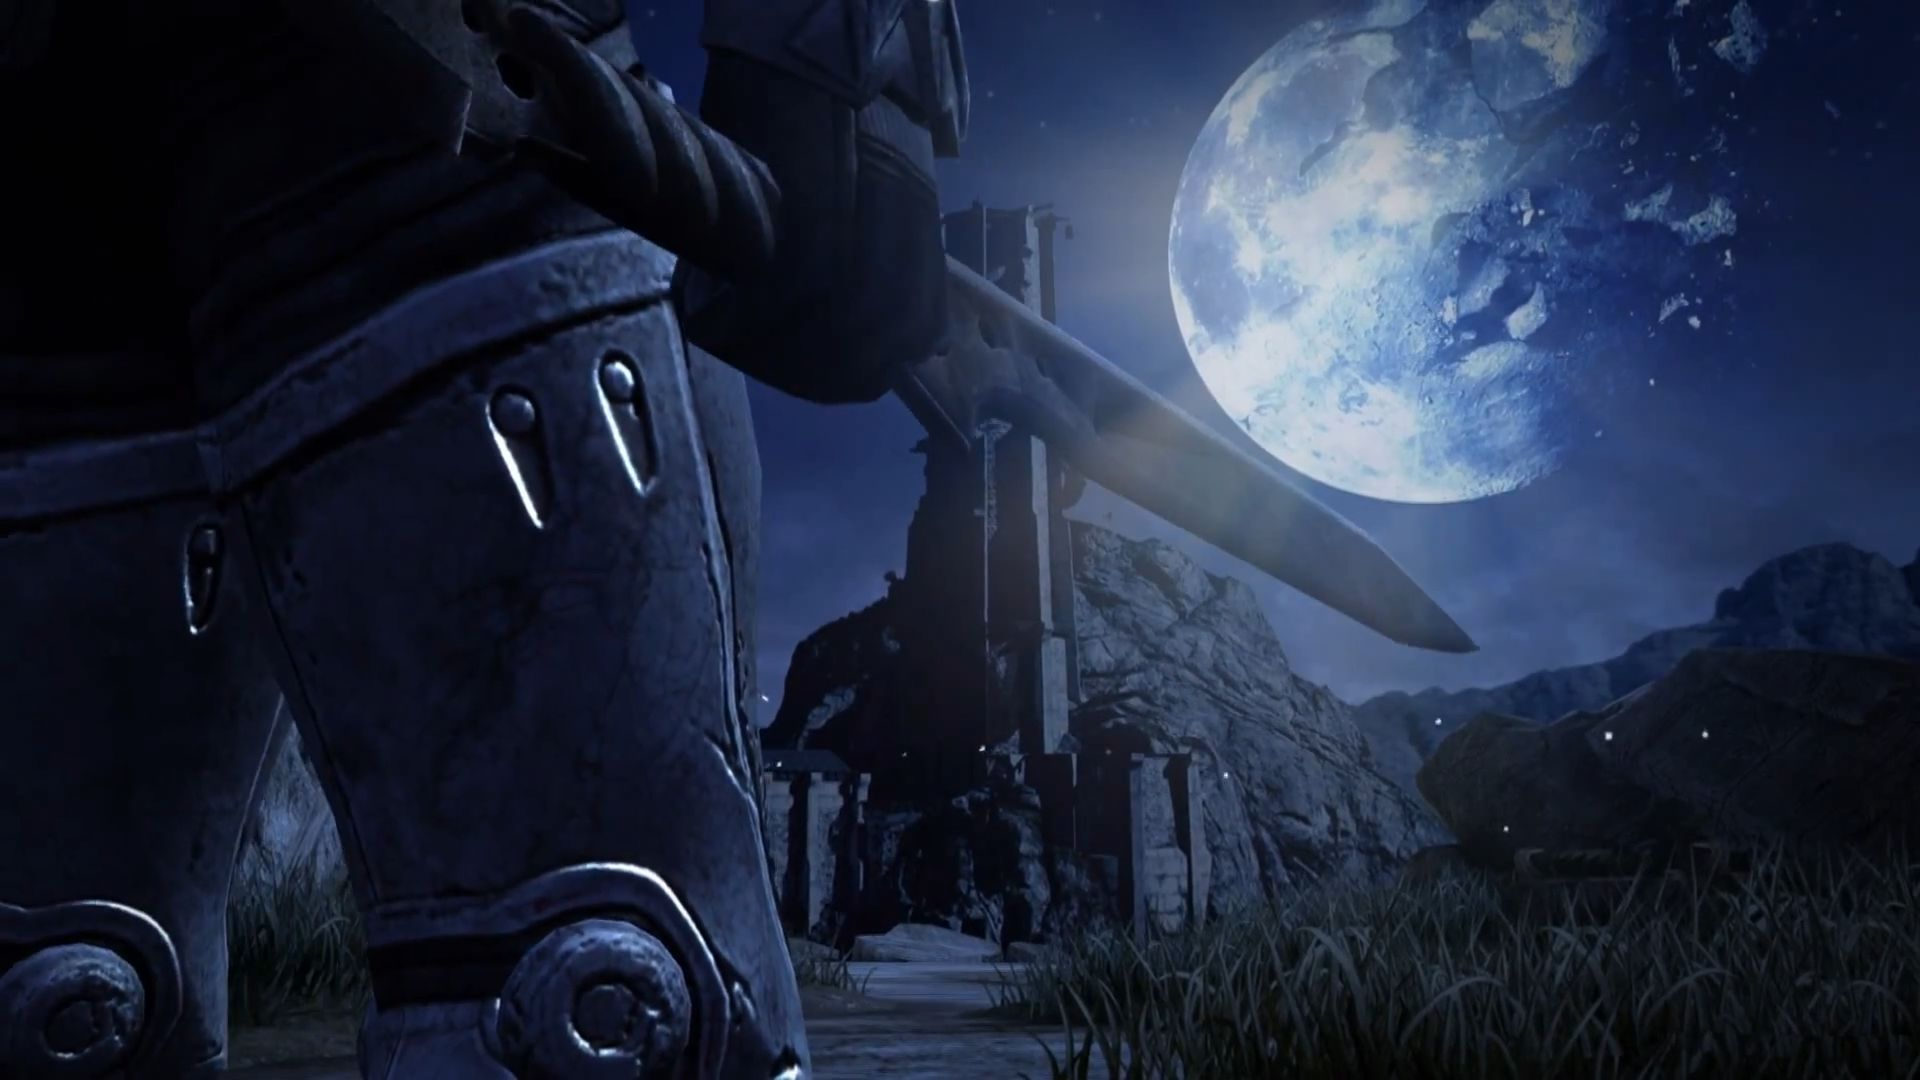 Infinity Blade 3 Wallpaper Infinity blade patch for 1920x1080